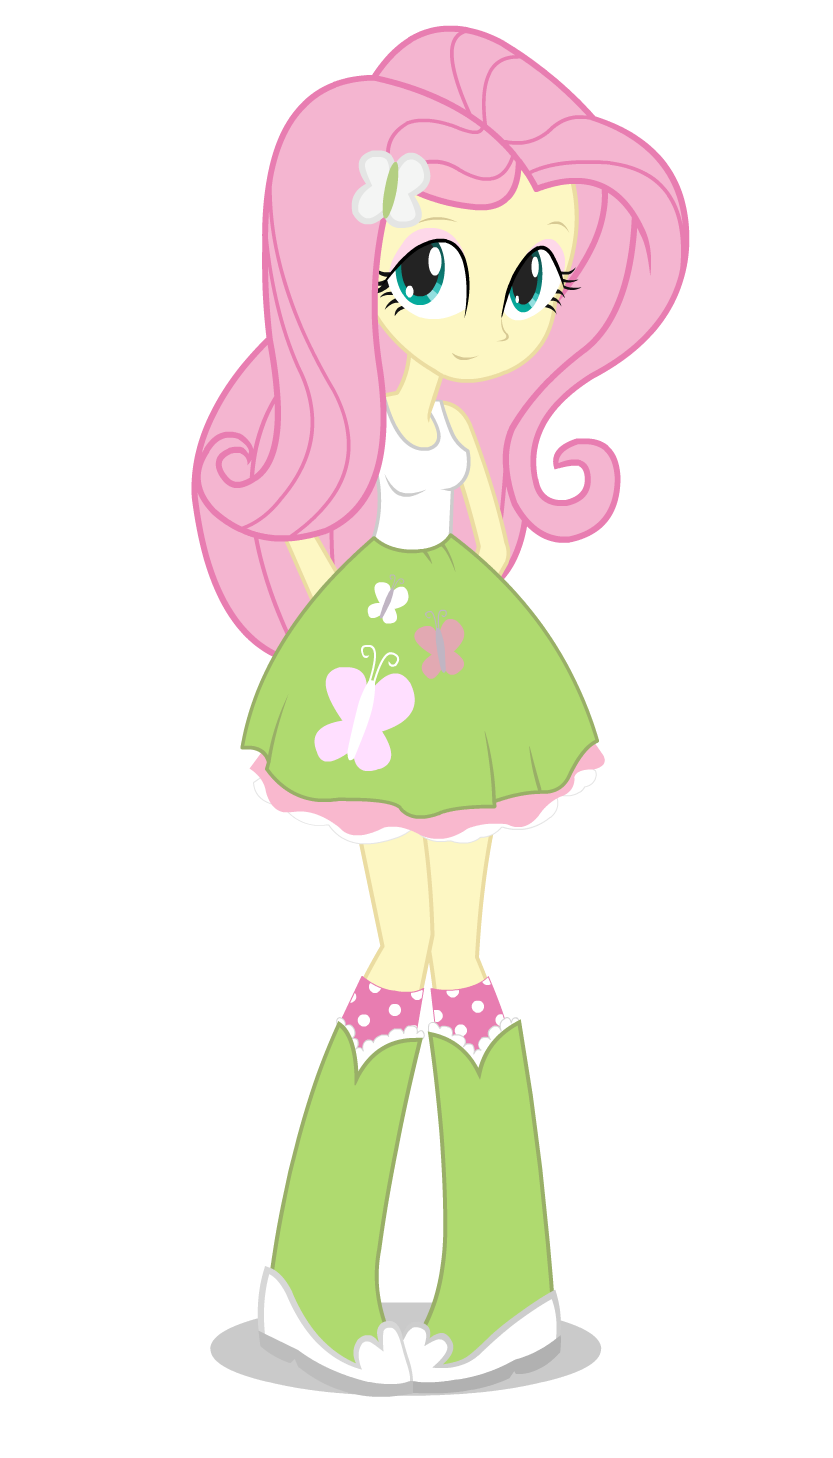 Shy clipart adorable girl. Eqg fluttershy world of